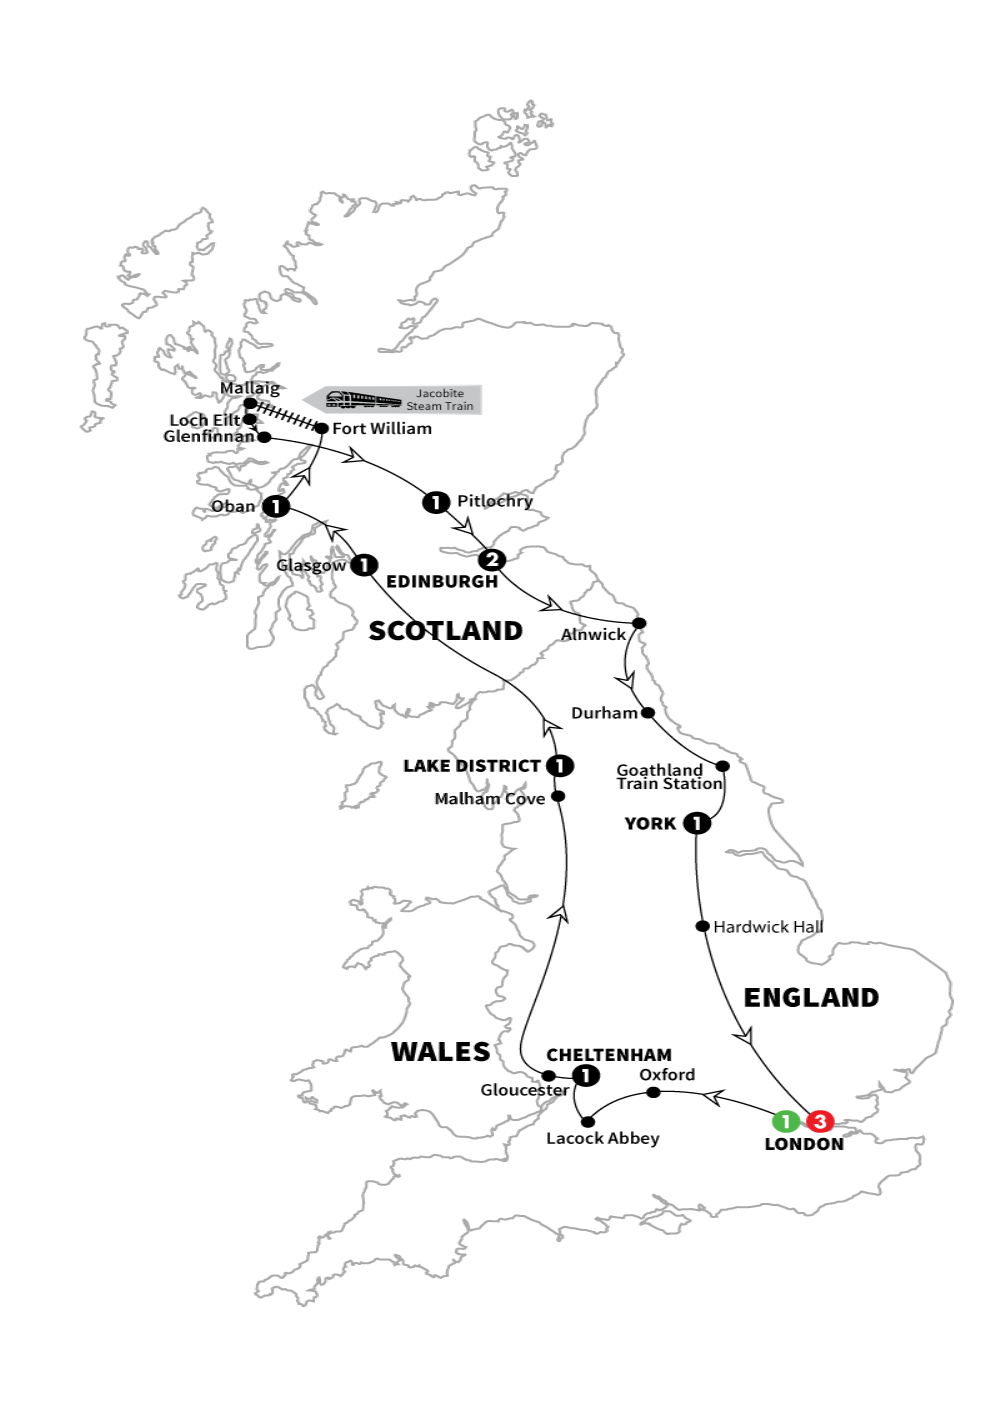 Harry Potter Map Of England.Exclusive Wizarding World Of Harry Potter Tour Journeys By Escapes